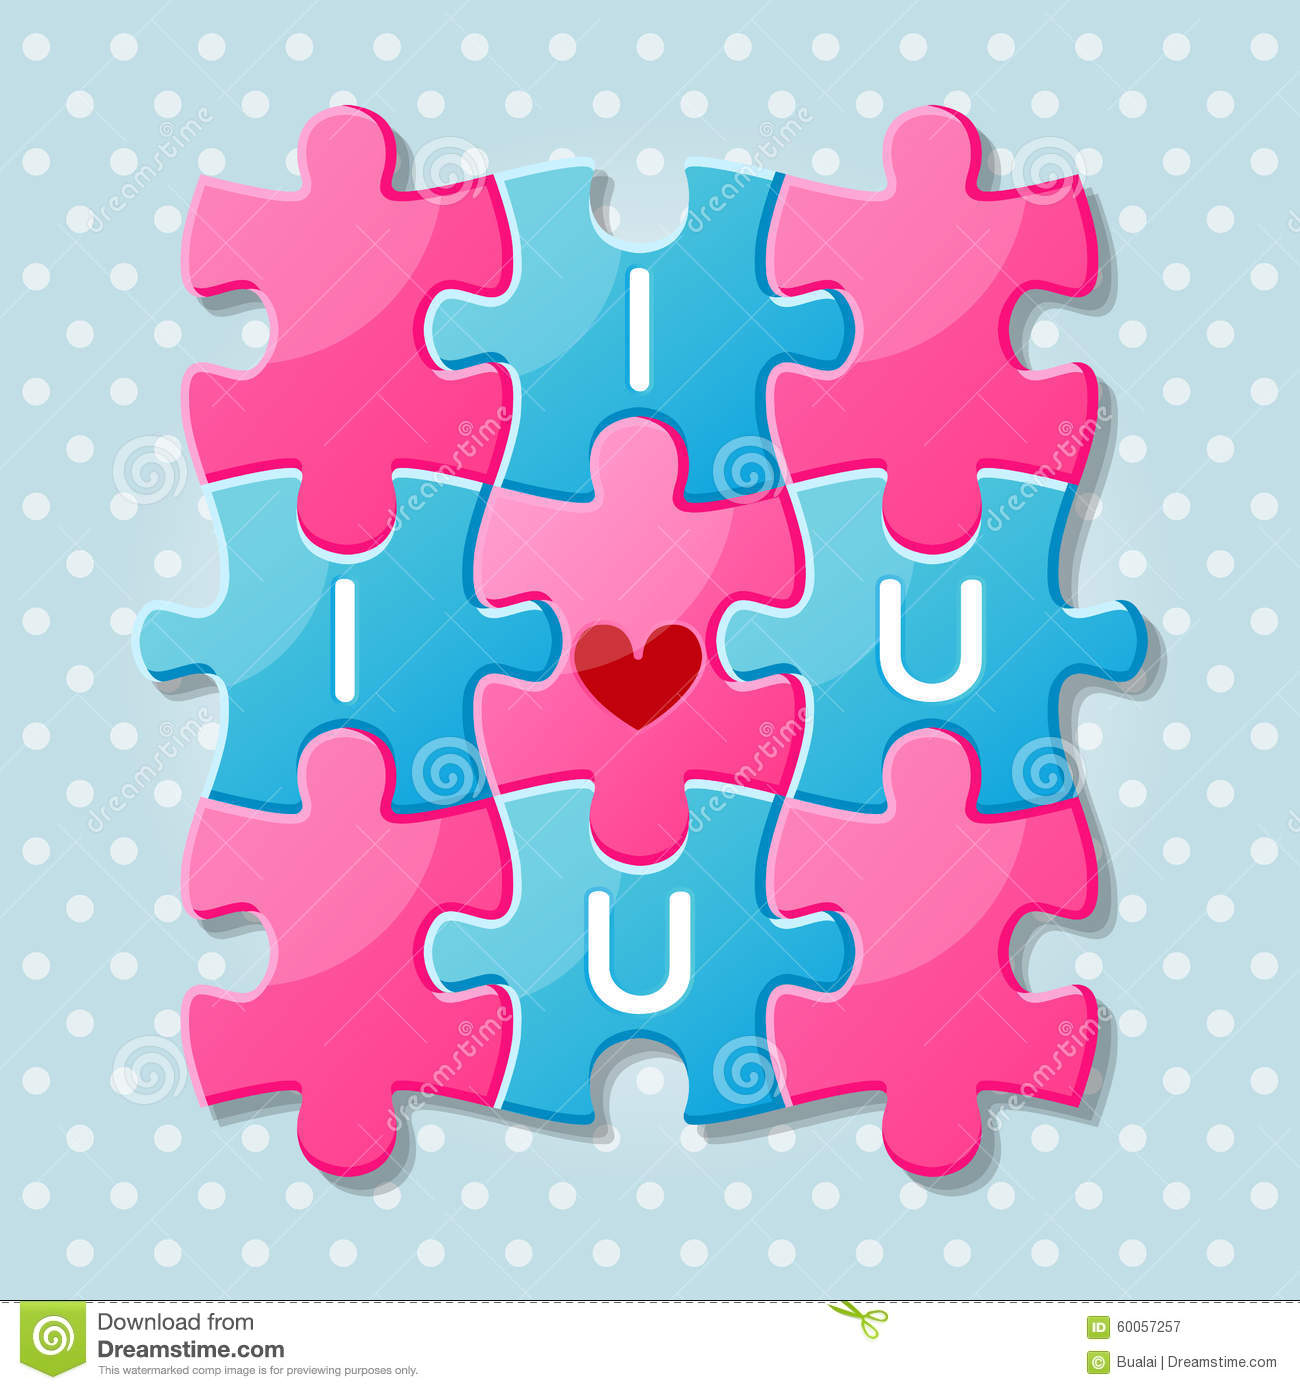 Jigsaw Puzzle Pieces With Words I Love You Stock Vector